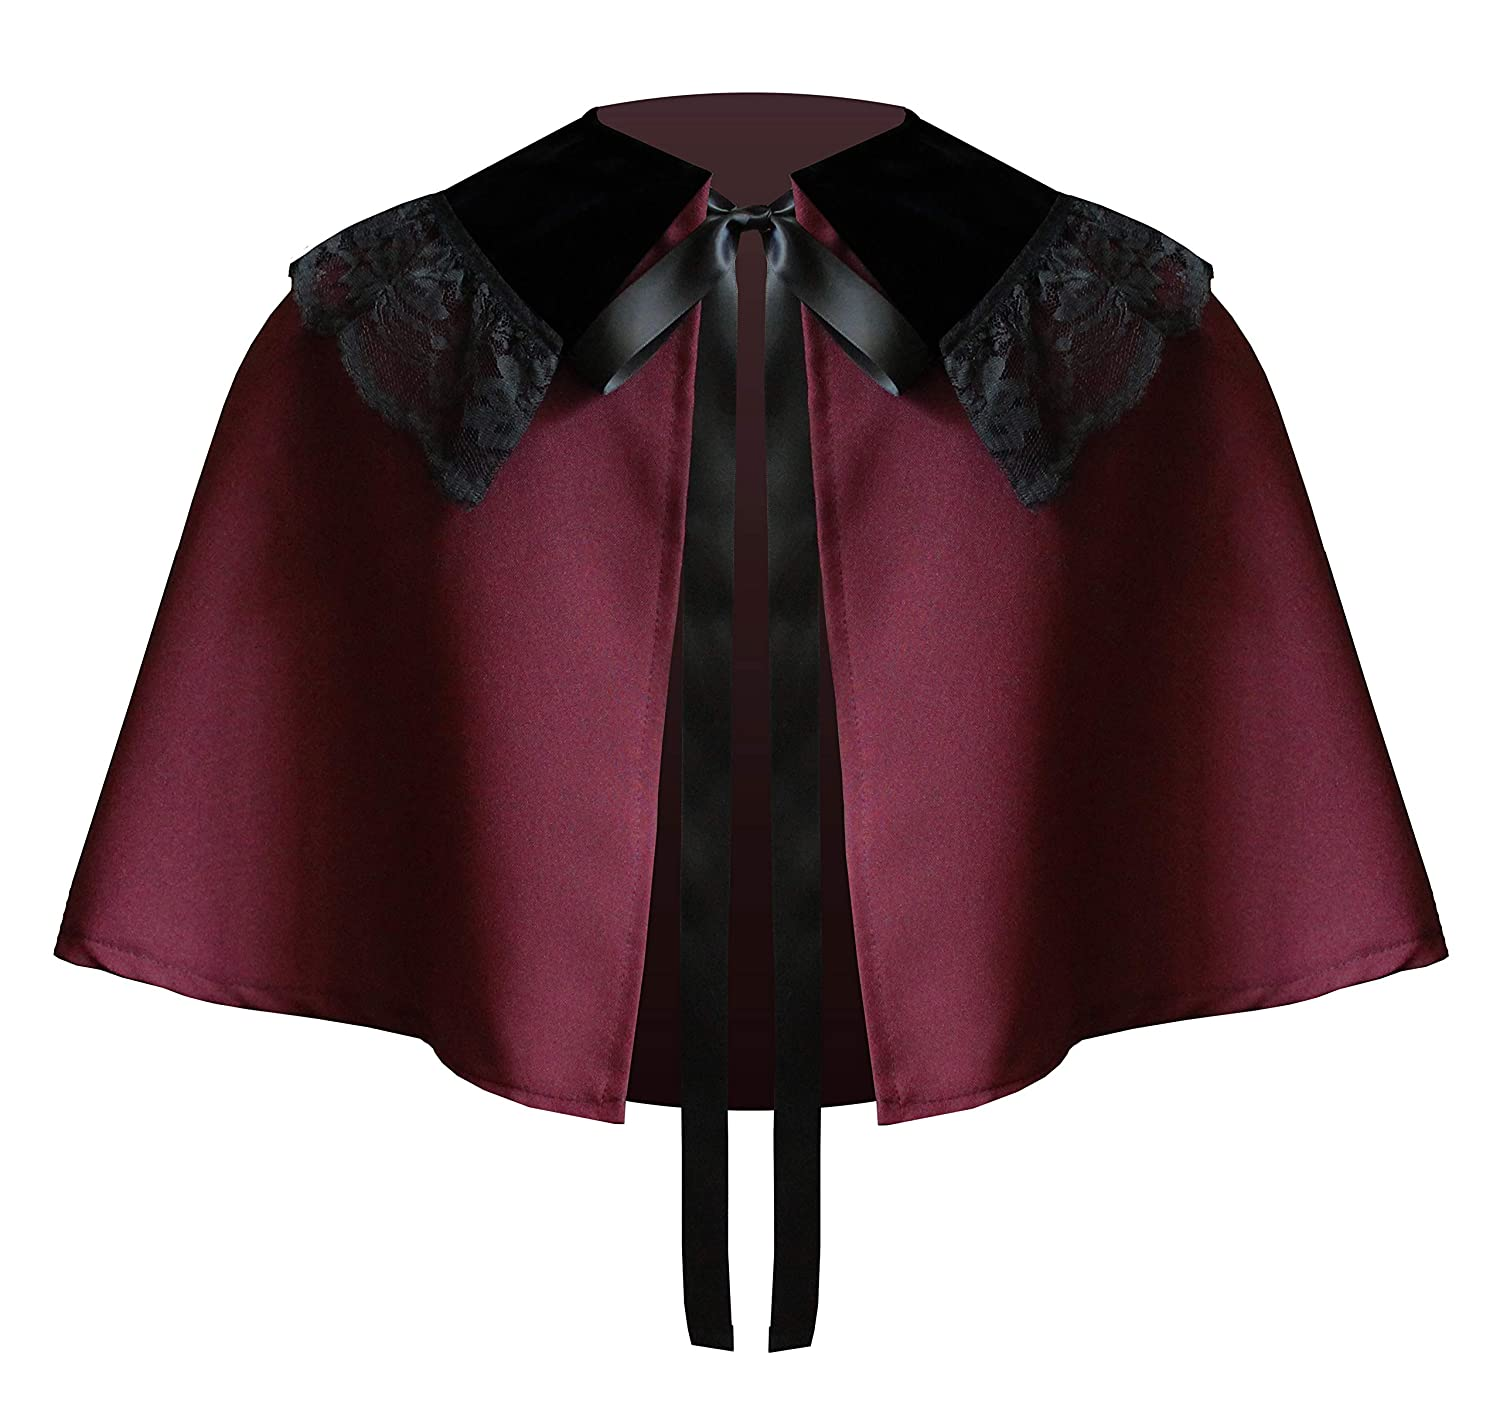 Victorian Clothing, Costumes & 1800s Fashion Steampunk Victorian Gothic Medieval Theater Western Renaissance Civil War Stage Theater Collar Capelet $34.99 AT vintagedancer.com